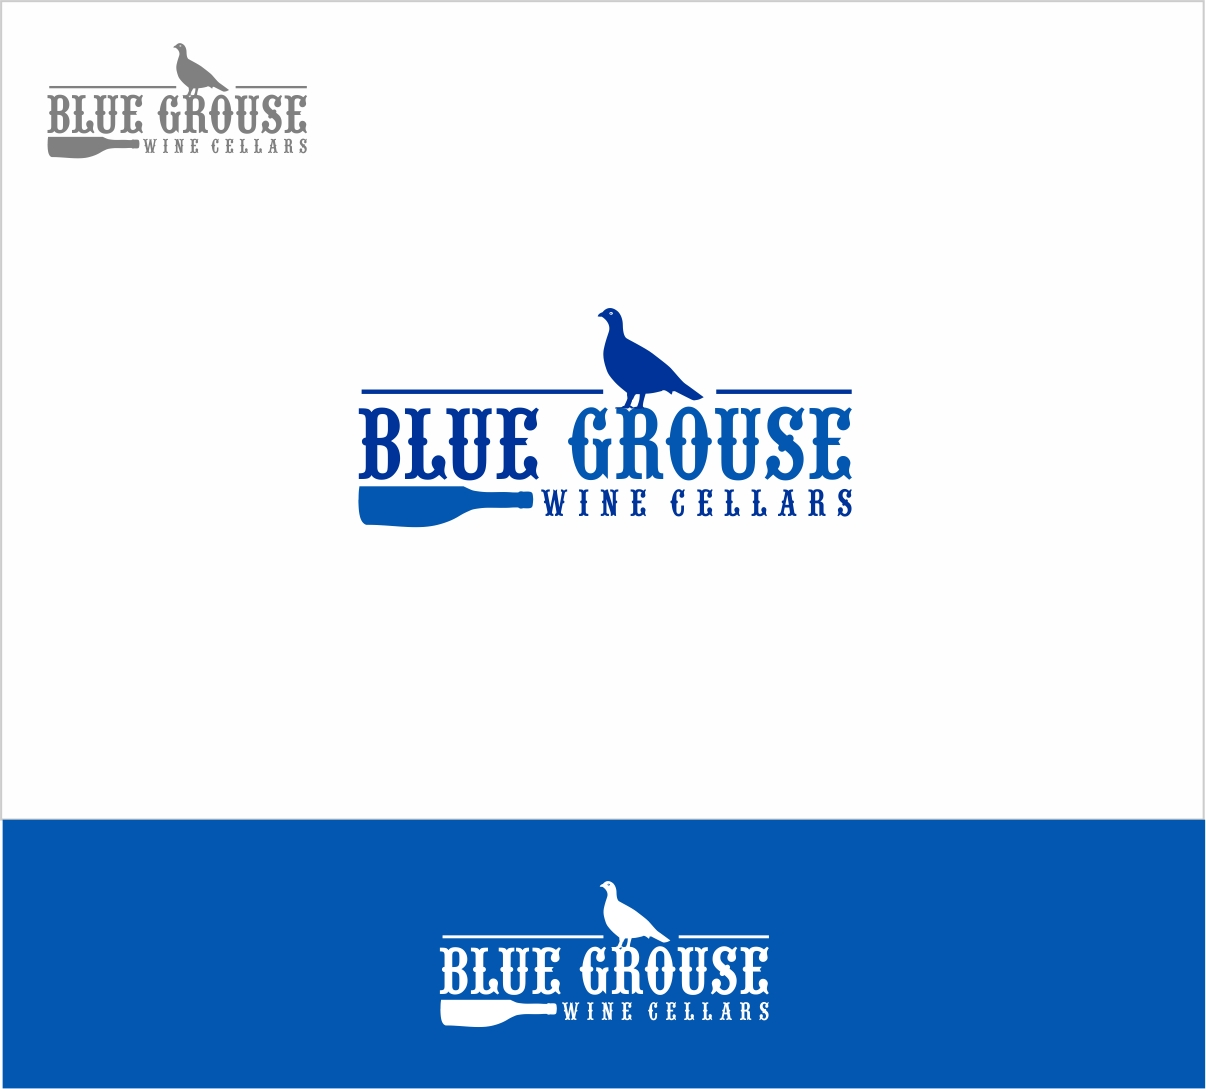 Logo Design by haidu - Entry No. 146 in the Logo Design Contest Creative Logo Design for Blue Grouse Wine Cellars.